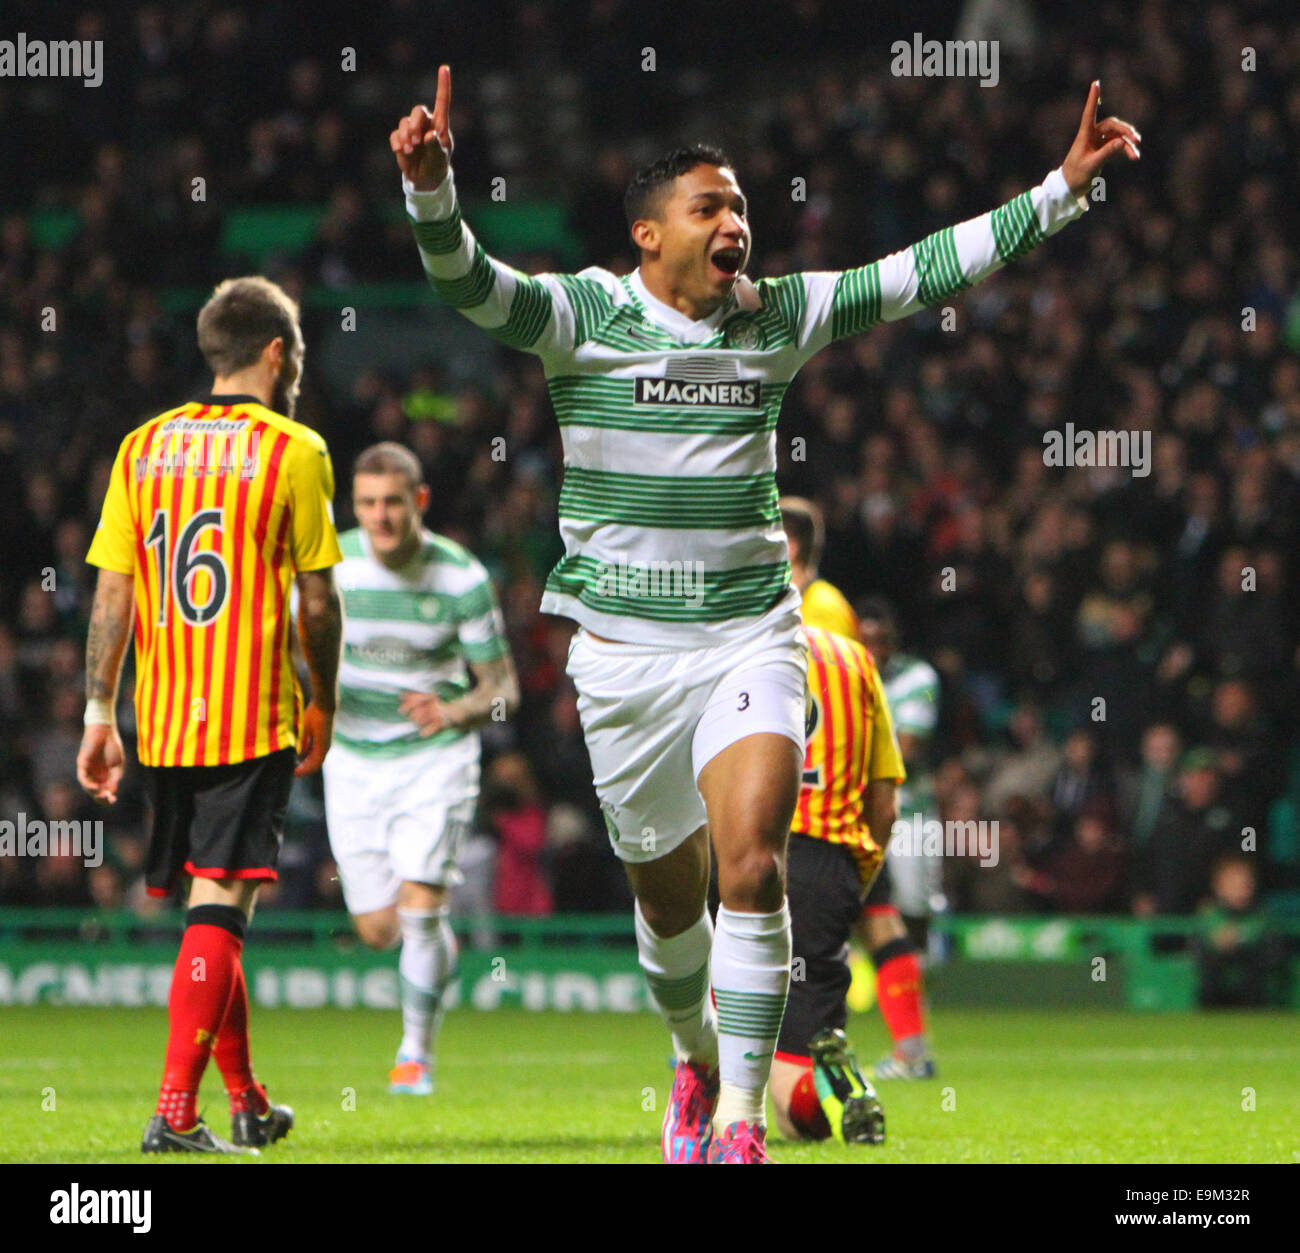 Glasgow, Scotland. 29th Oct, 2014. Scottish League Cup. Celtic versus Partick Thistle. Emilio Izaguirre celebrates - Stock Image